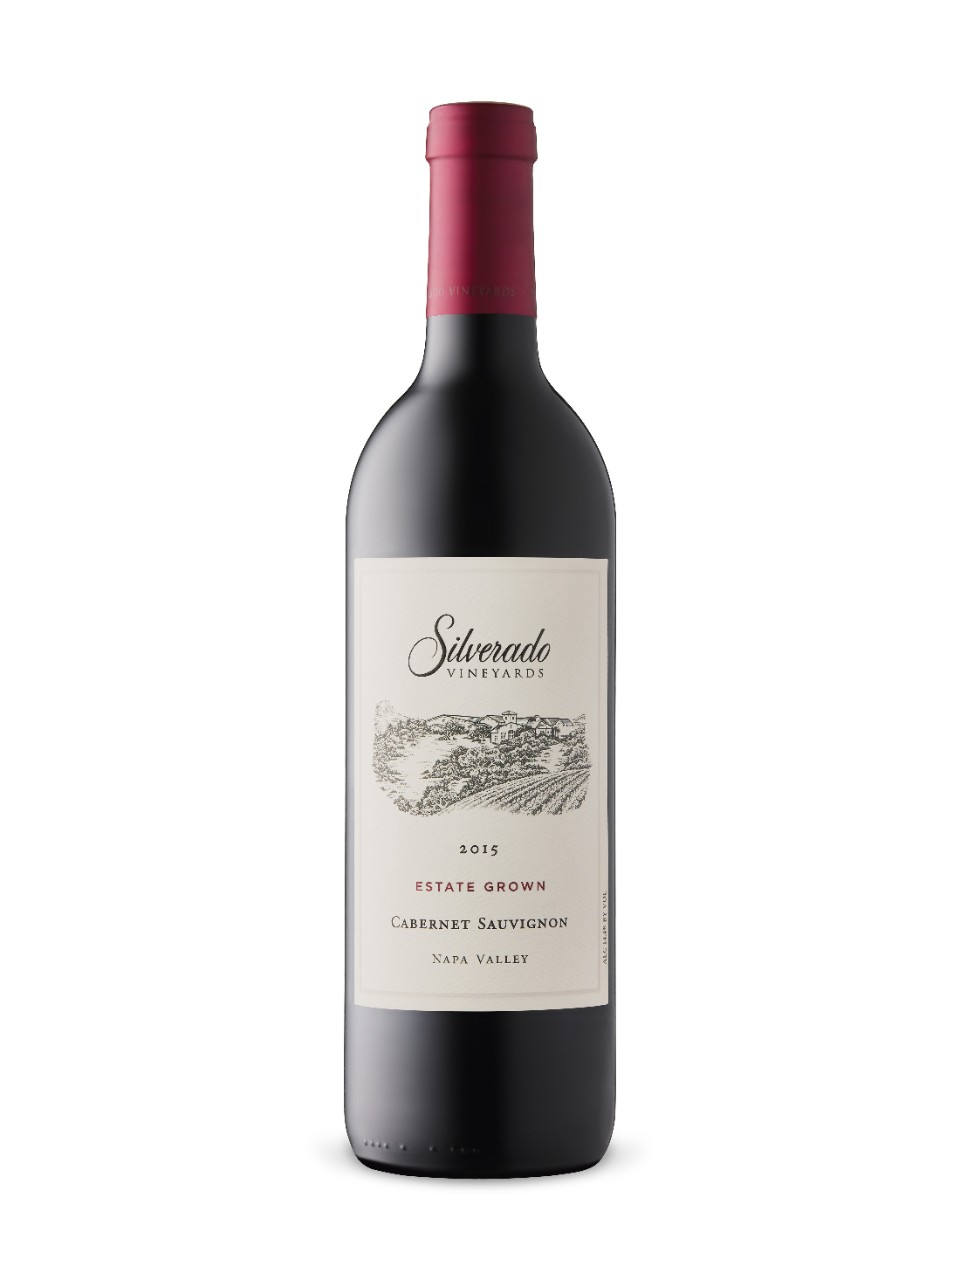 Silverado Vineyards Estate Grown Cabernet Sauvignon 2013